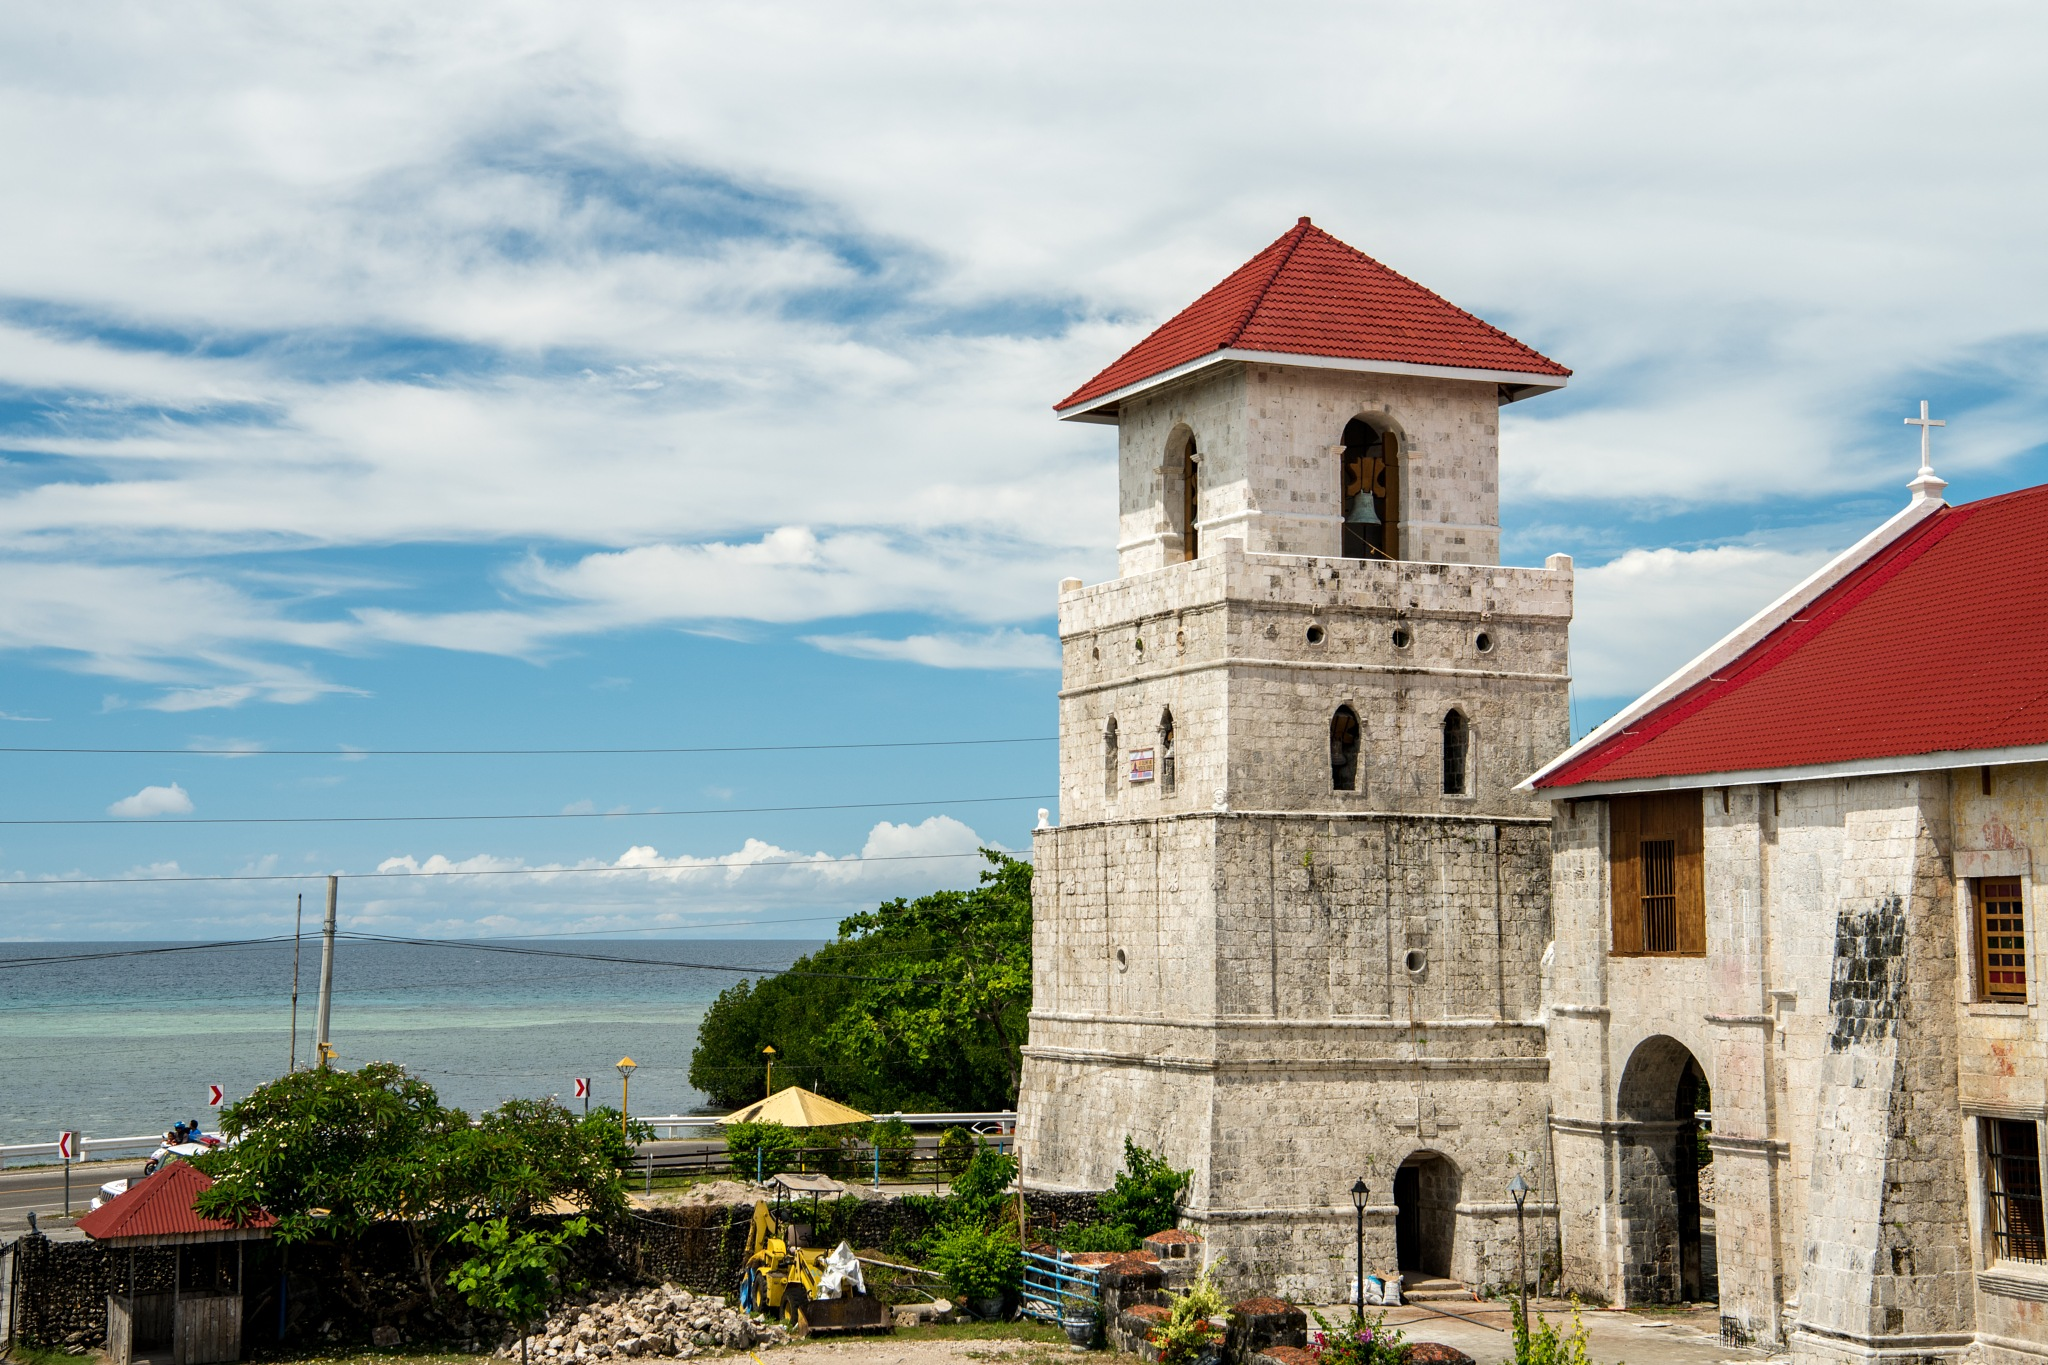 Bell tower of Baclayon Church by Ole Morten Eyra